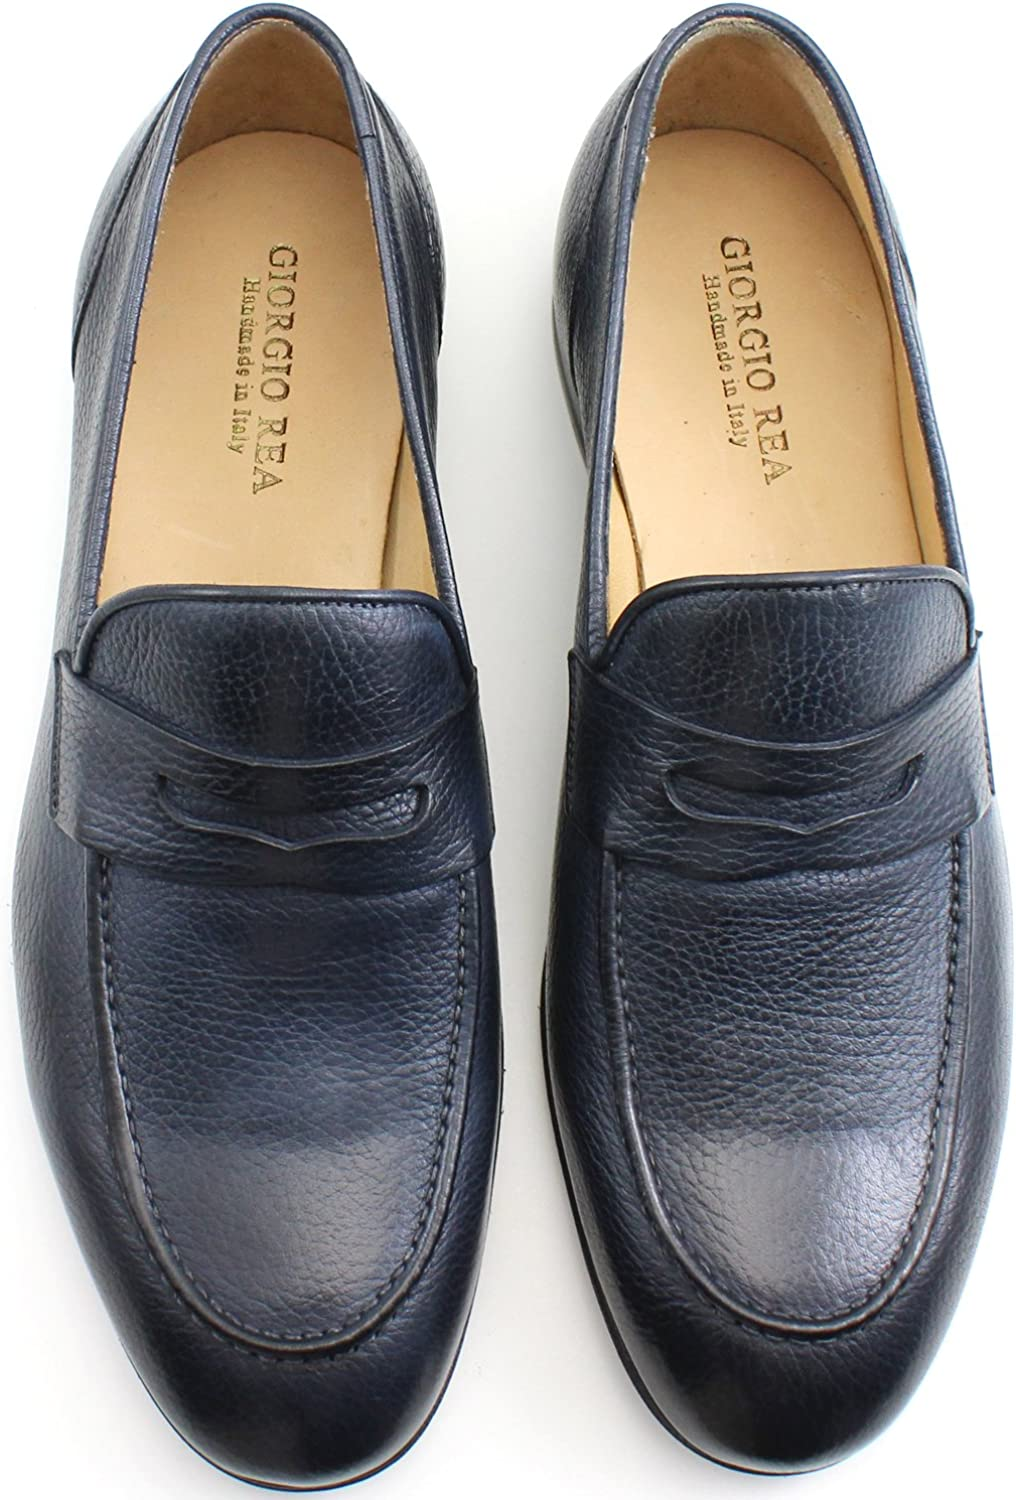 Giorgio Rea Italian Handmade Navy Blue Penny Loafers Mens Shoes Leather Mocassins